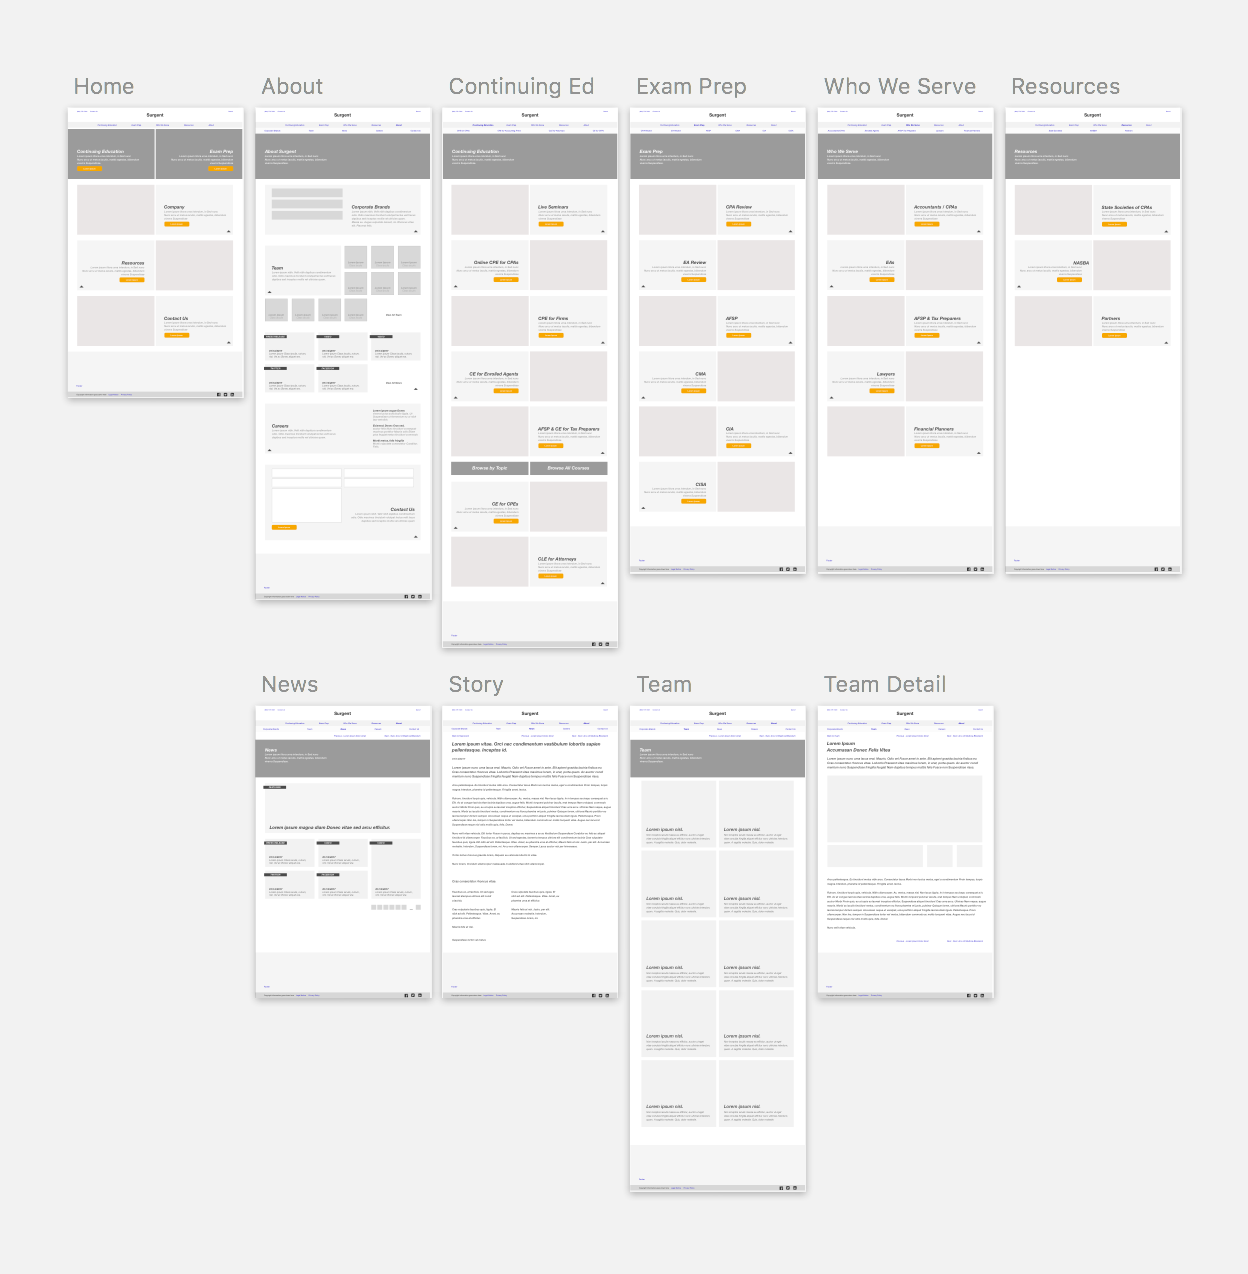 Surgent.com's sitemap, wireframes, and rapid prototype done with Sketch and InVision.